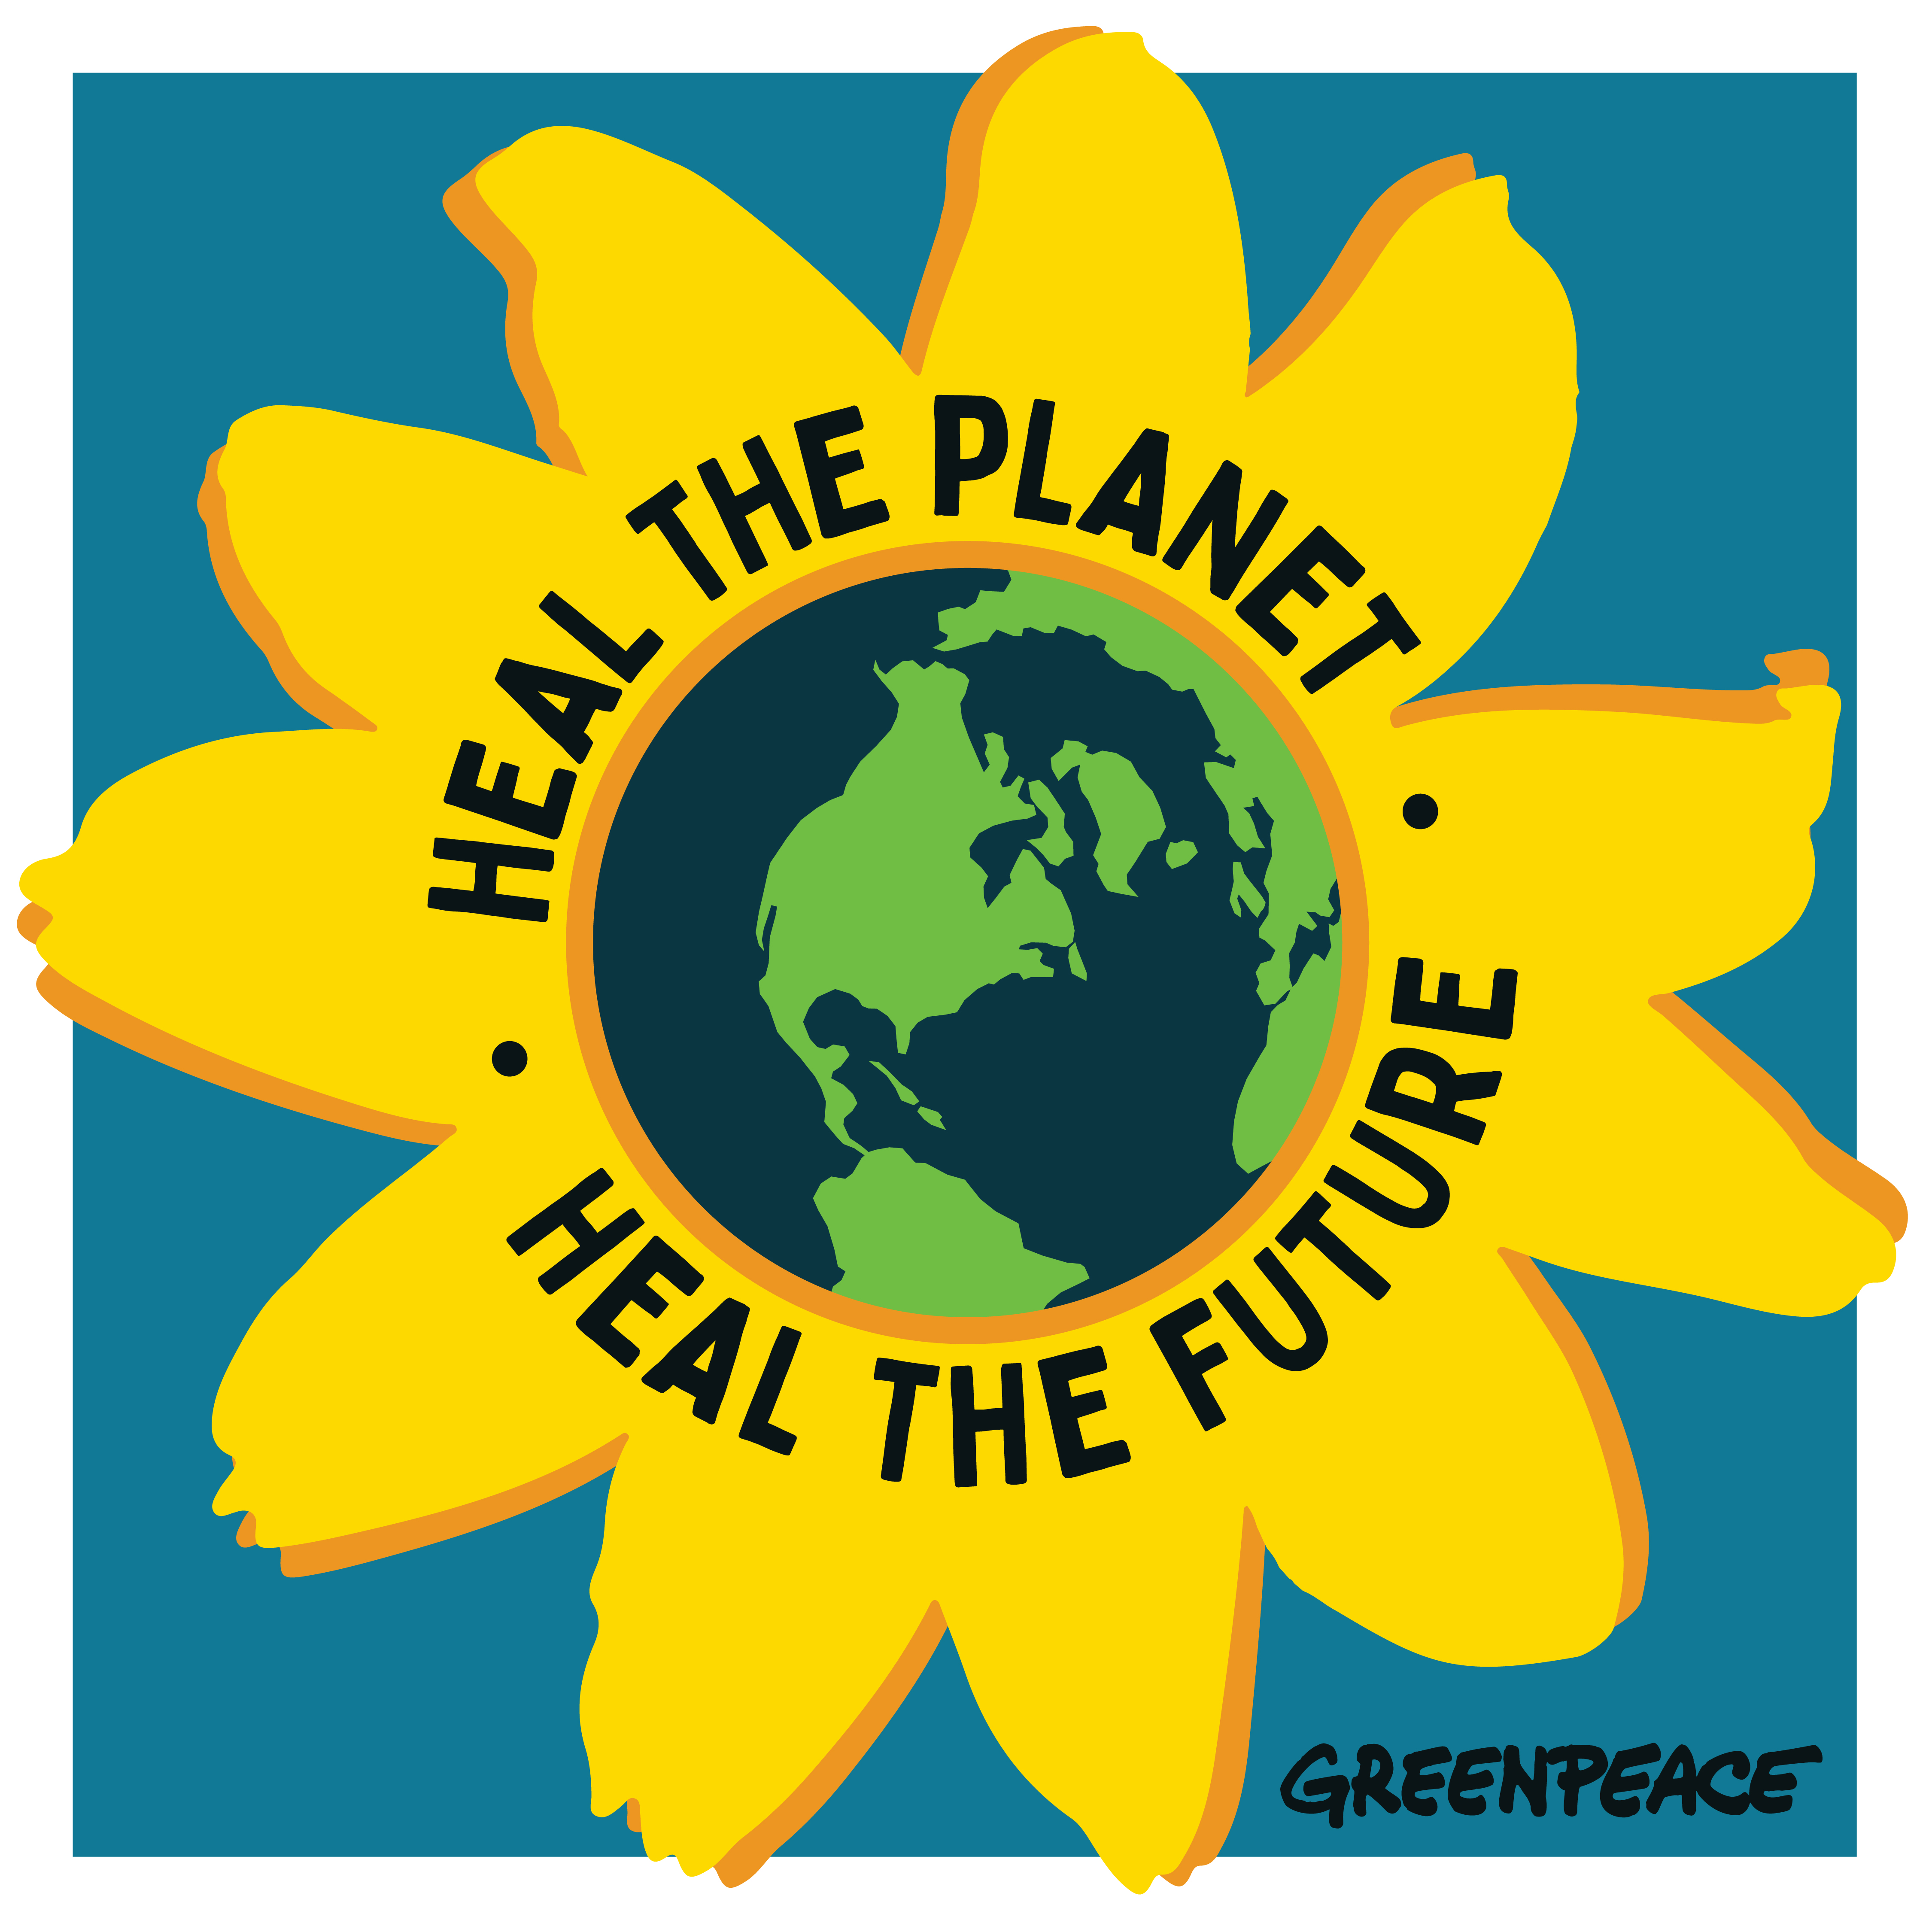 Free Greenpeace Sticker: Get yours Today - Greenpeace